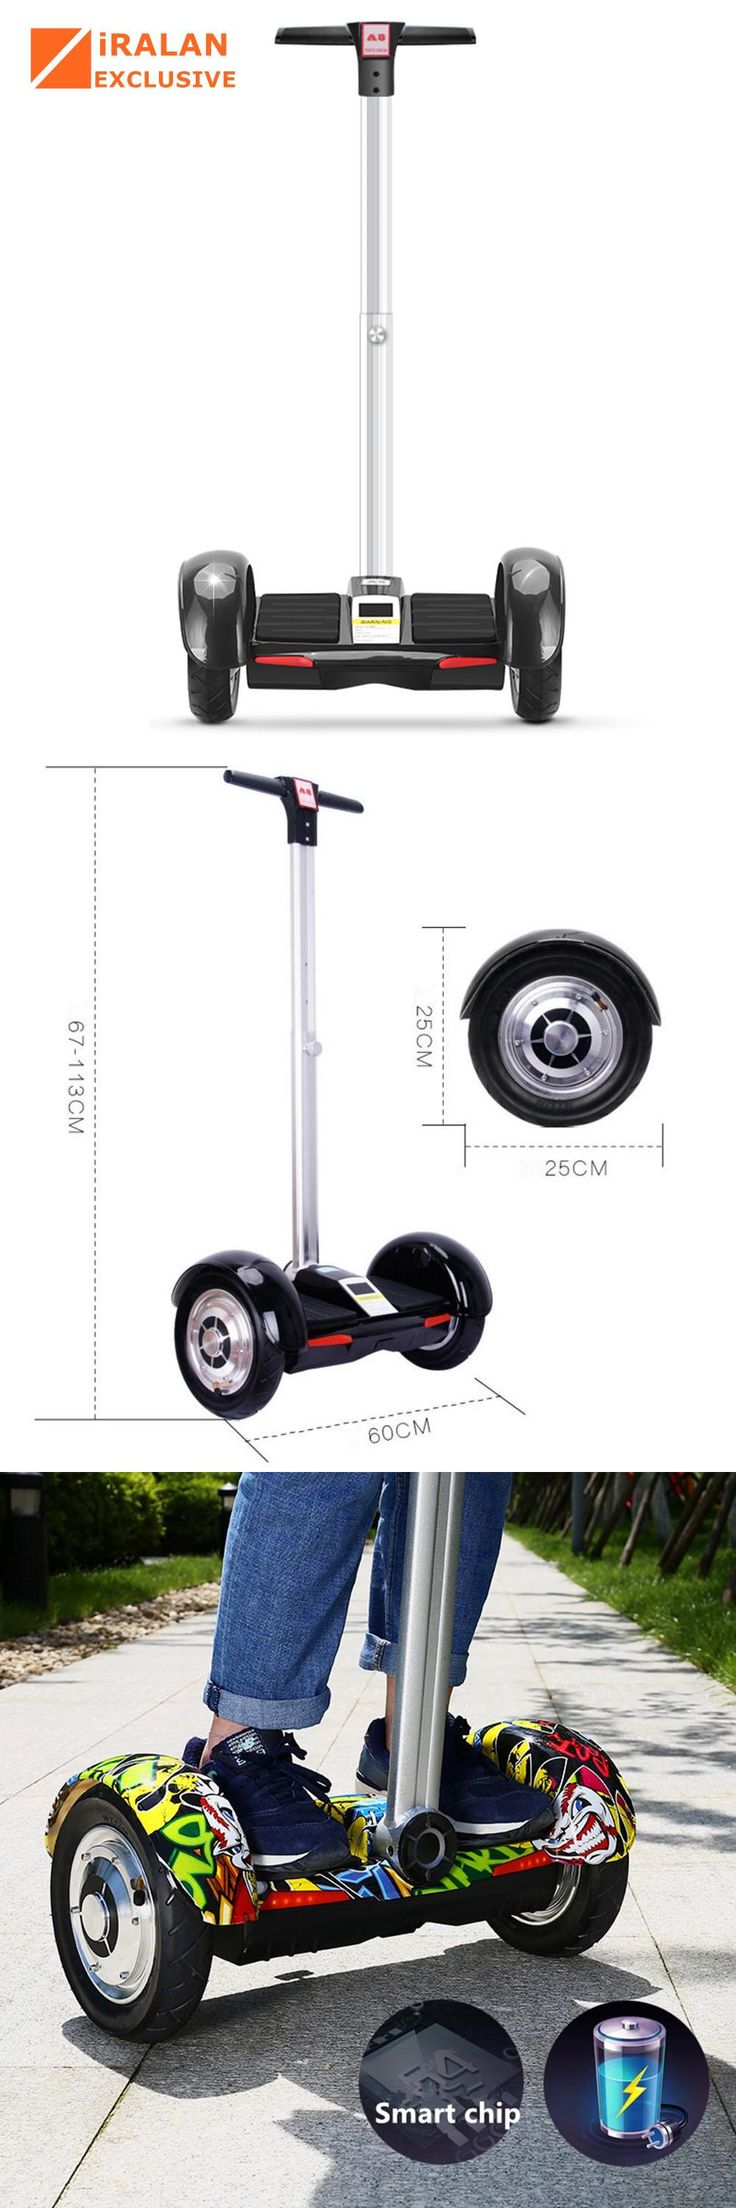 [Visit to Buy] IRALAN A8 10 inch Hoverboard Electric Scooter self Balancing scooter Smart two wheel skateboard With Handle Bluetooth Speaker #Advertisement